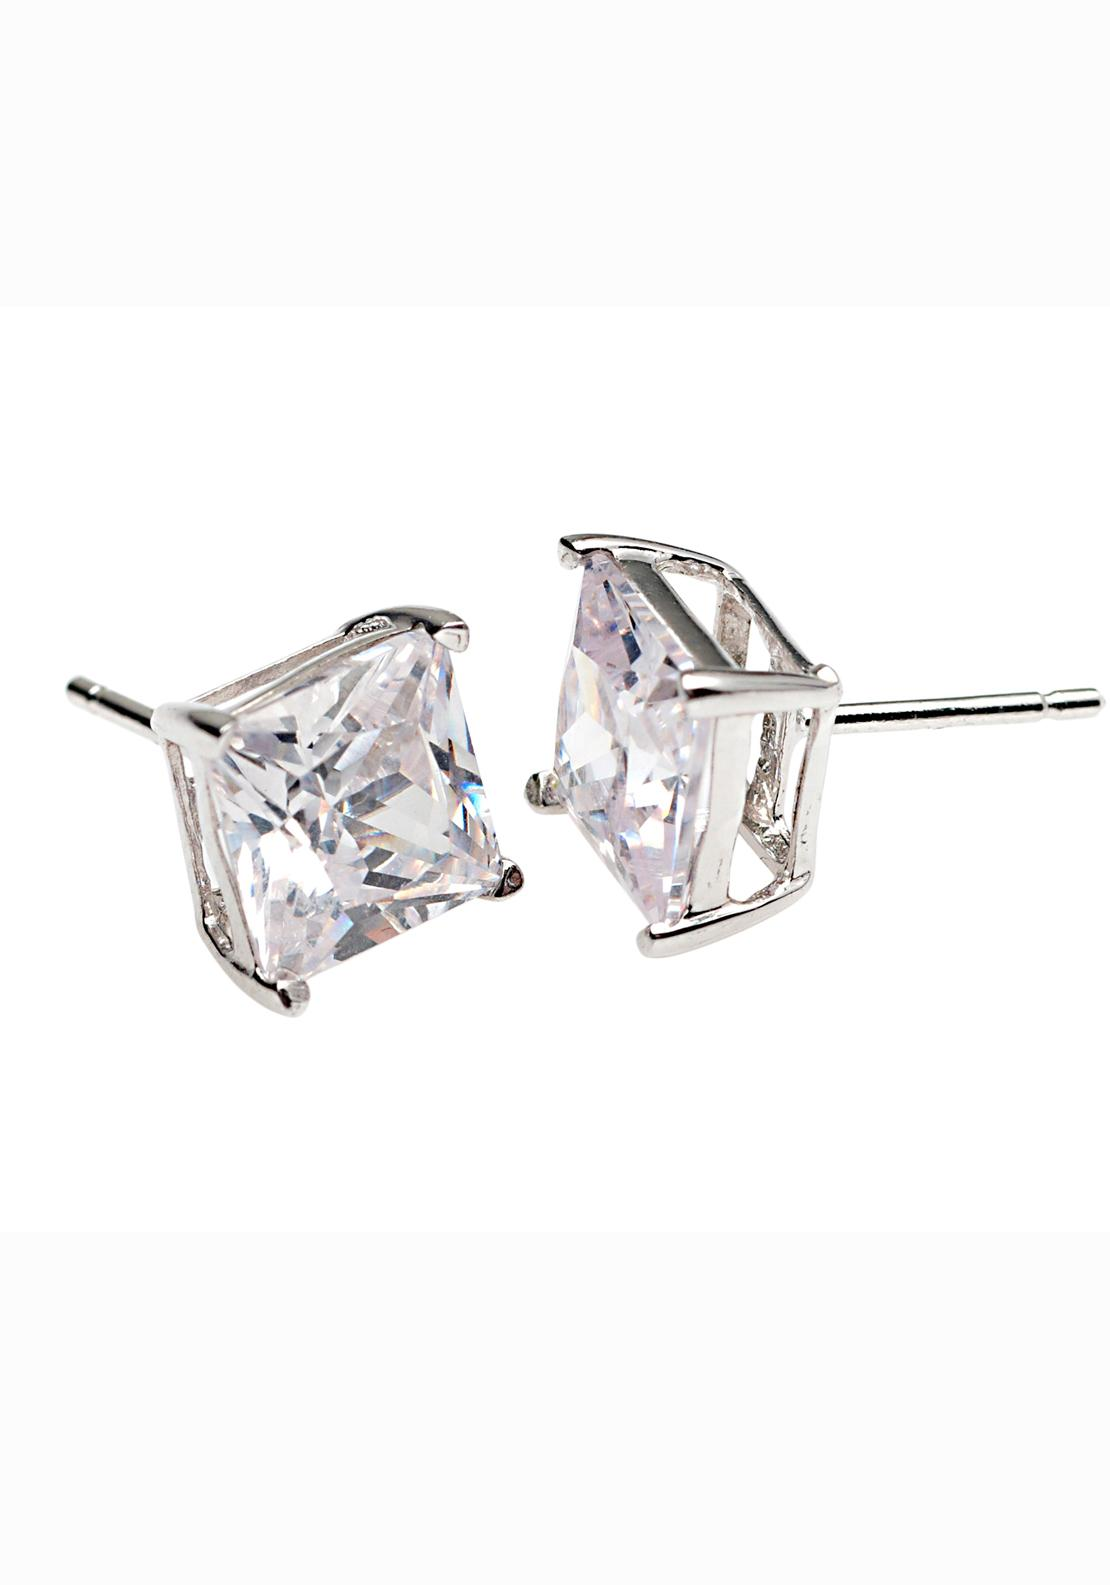 Killarney Crystal Opulence Square Solitaire Earrings